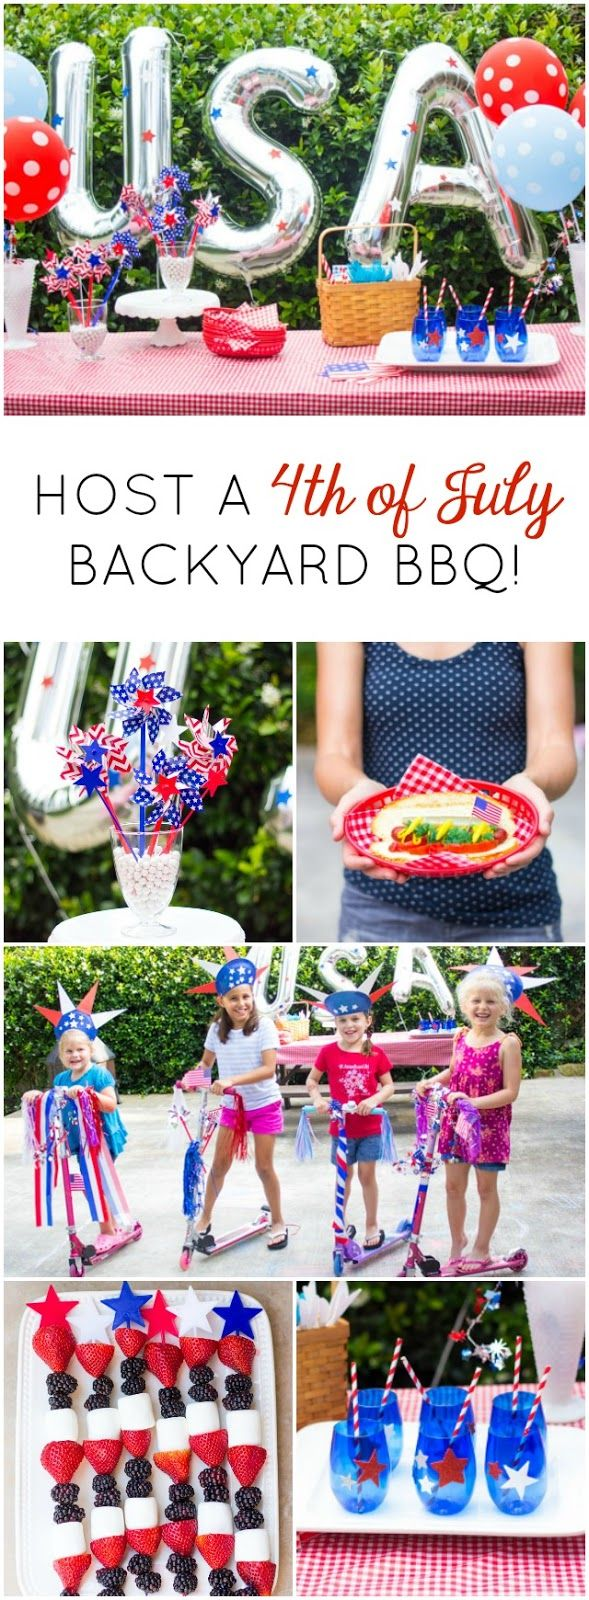 4Th Of July Backyard Party Ideas host a 4th of july party - 7 simple ideas to try! | let's celebrate